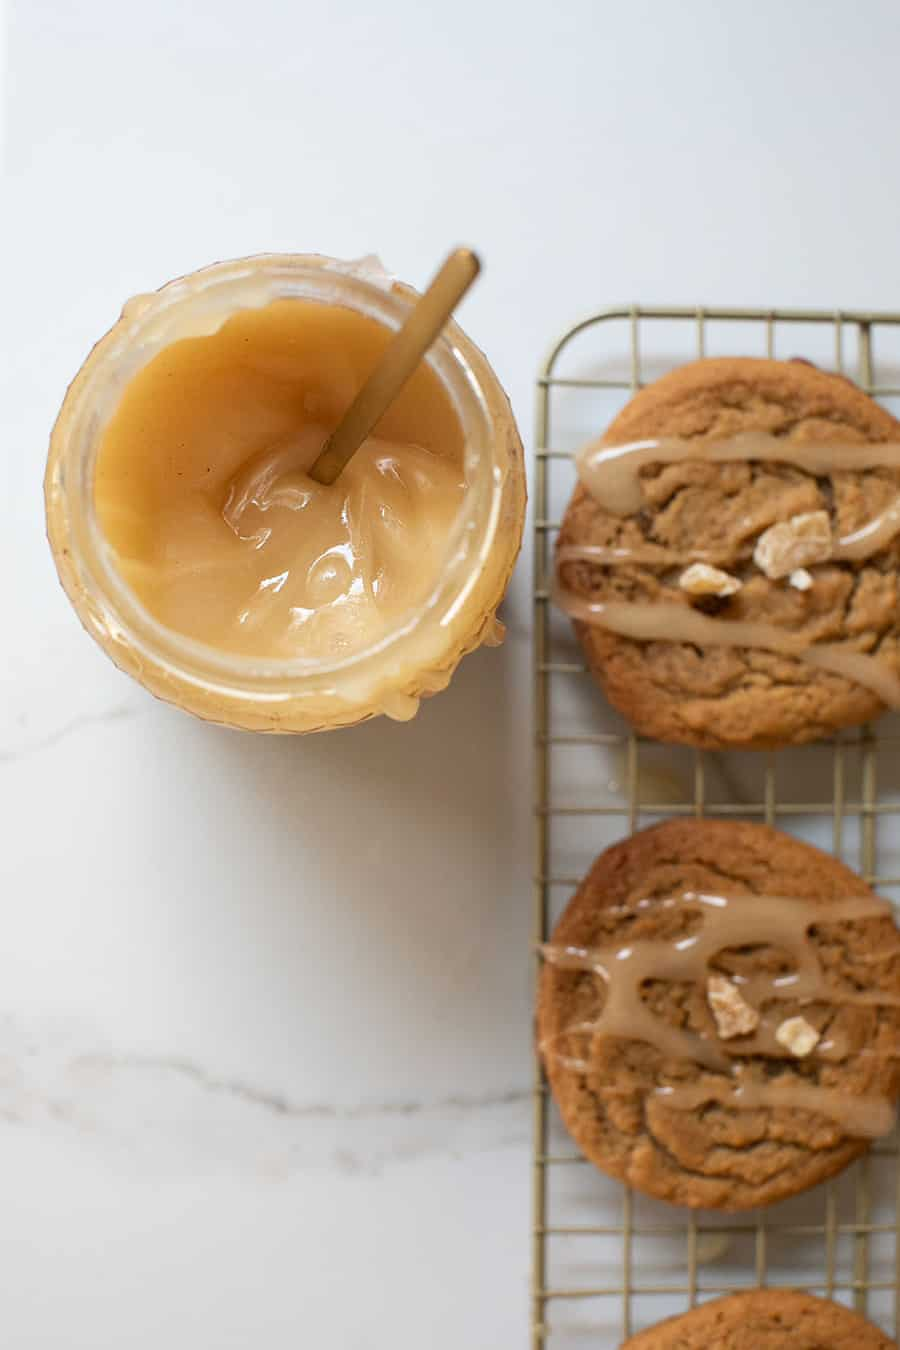 Ginger cookies drizzled with honey